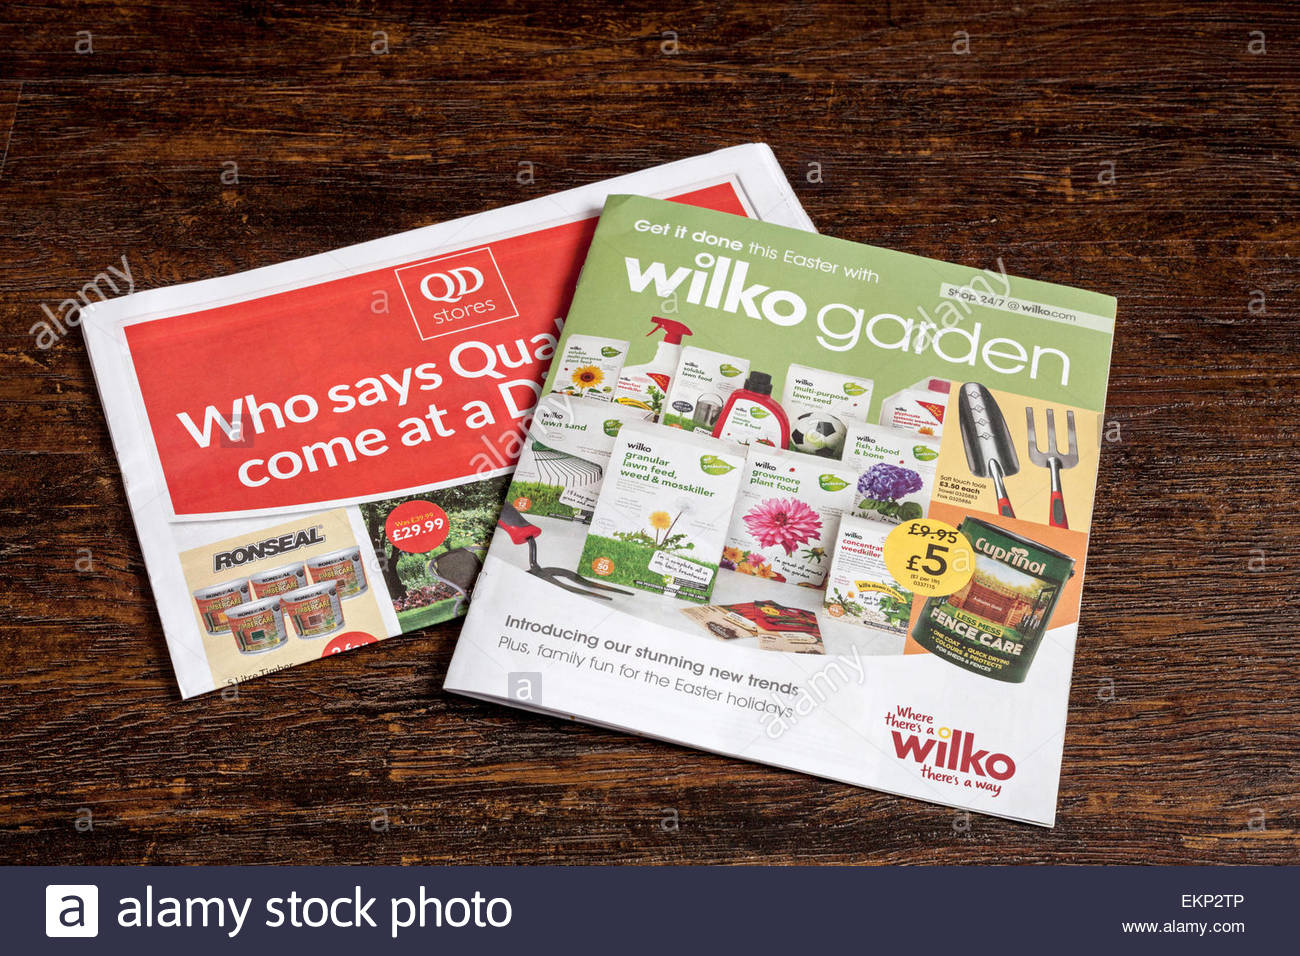 QD Stores and Wilko Garden Magazines - Budget Stores - Stock Image